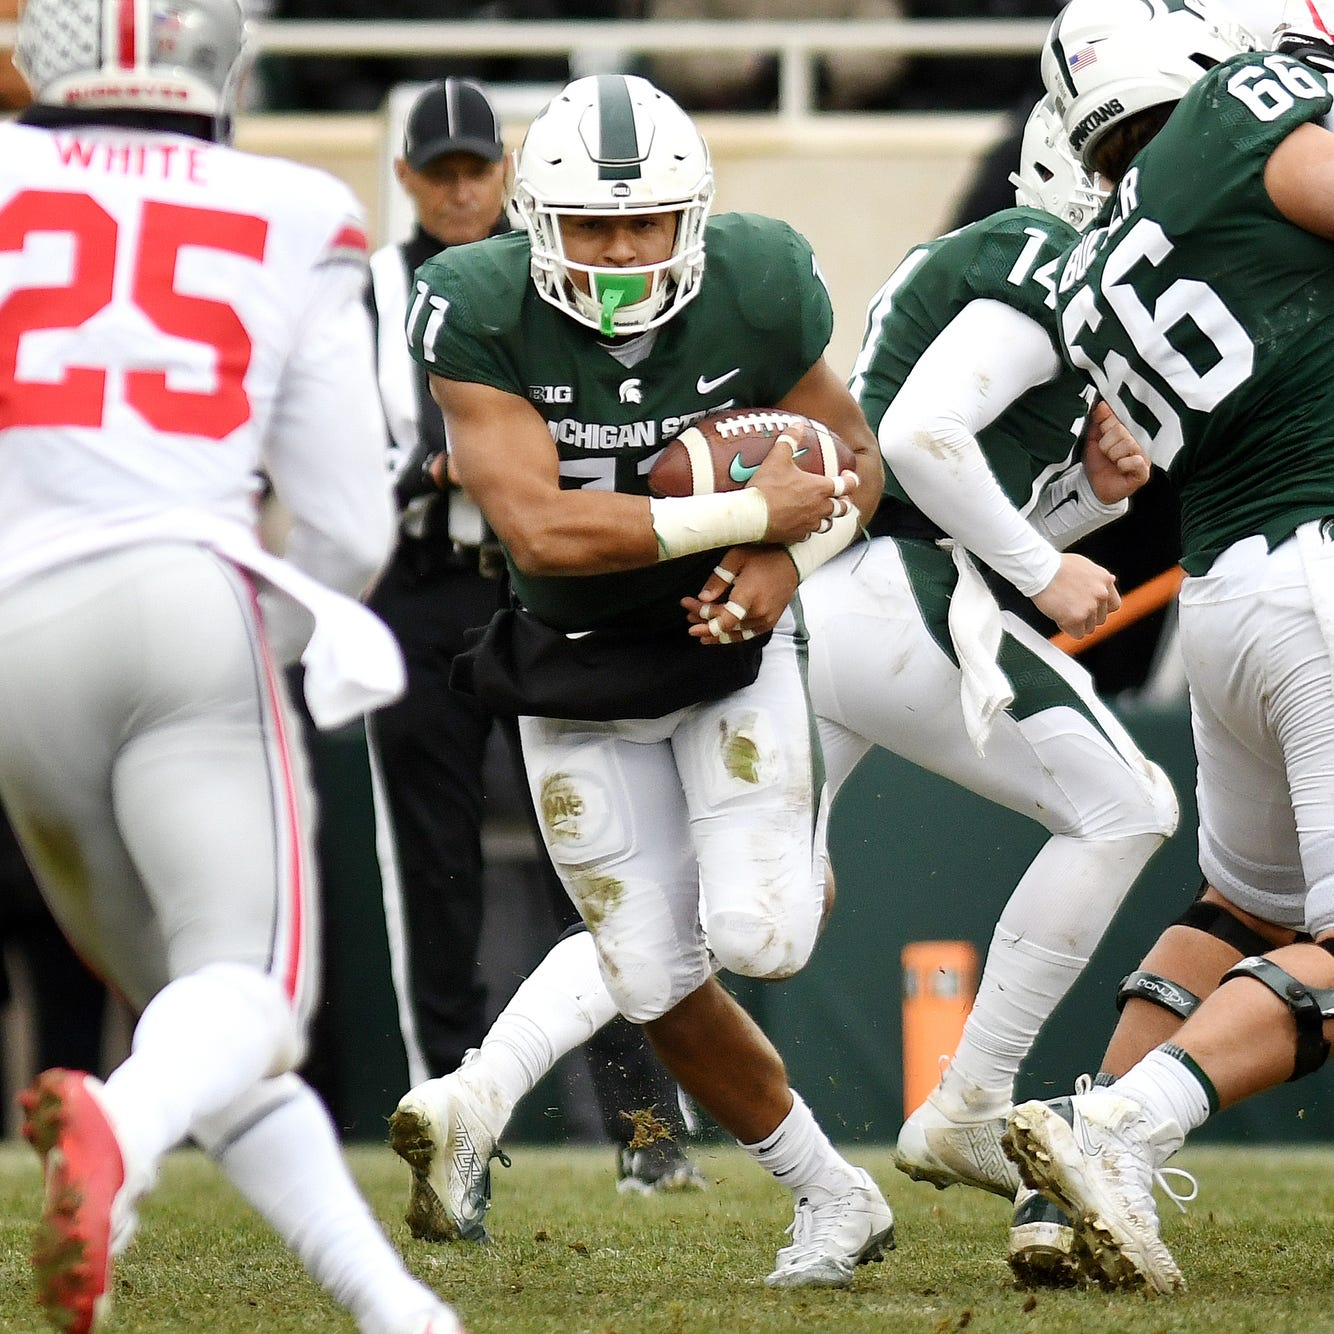 MSU vs. Rutgers: Tickets as low as $2 for last home game of the season